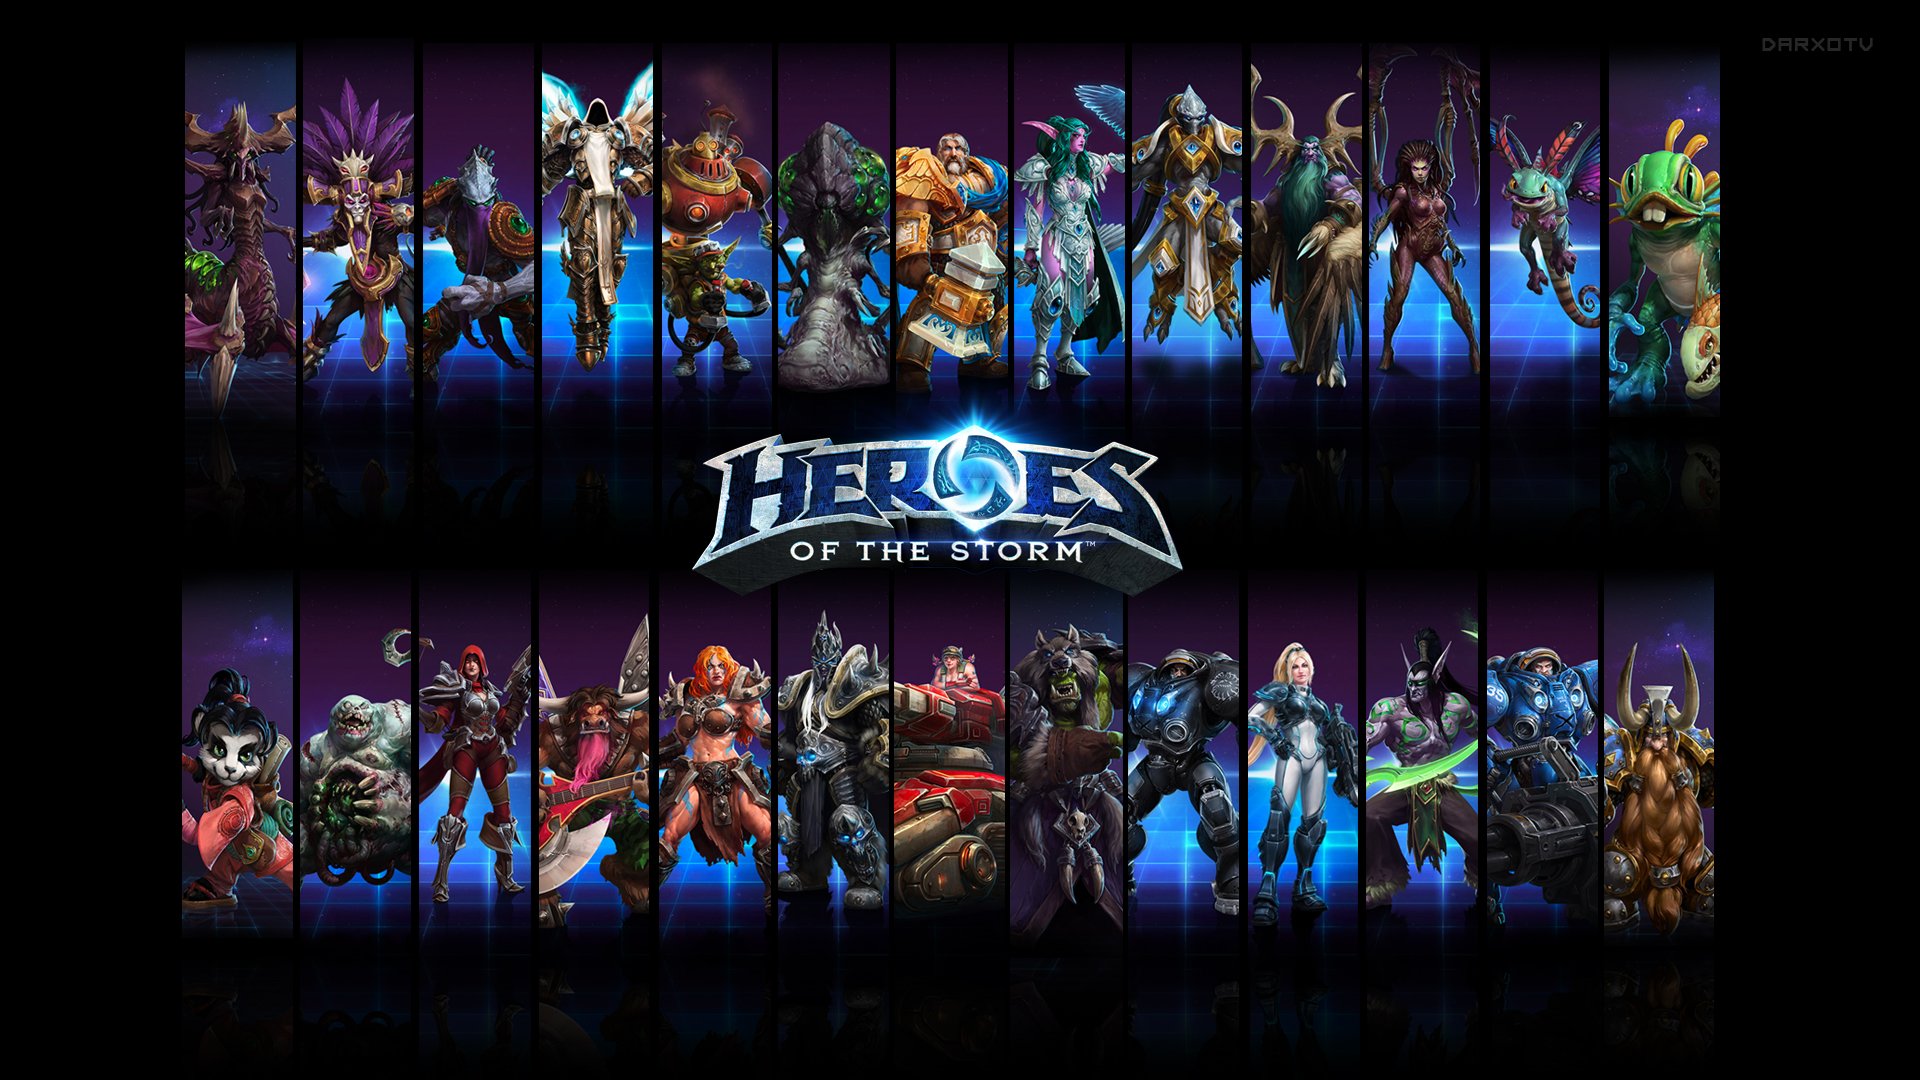 Heroes Of The Storm Backgrounds, Compatible - PC, Mobile, Gadgets  1920x1080 px